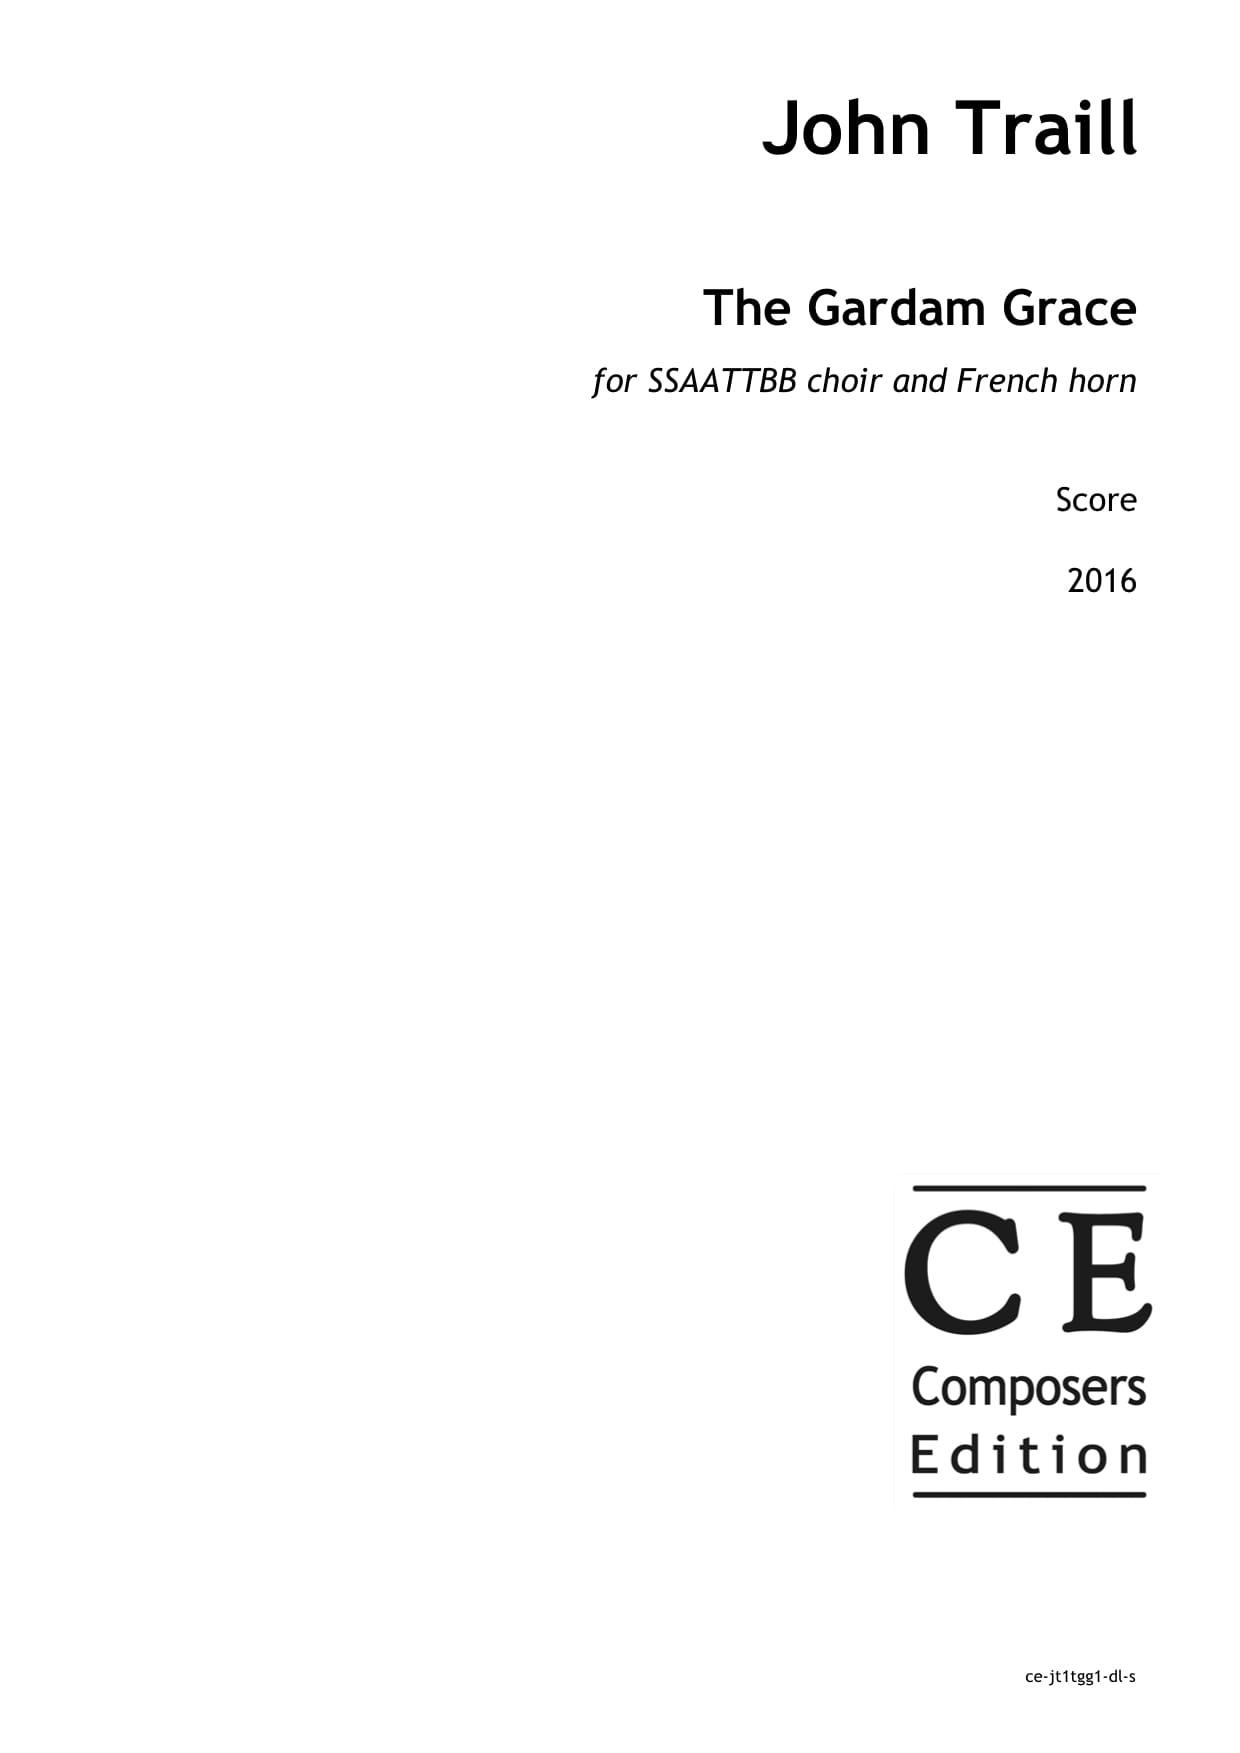 John Traill: The Gardam Grace for SSAATTBB choir and French horn